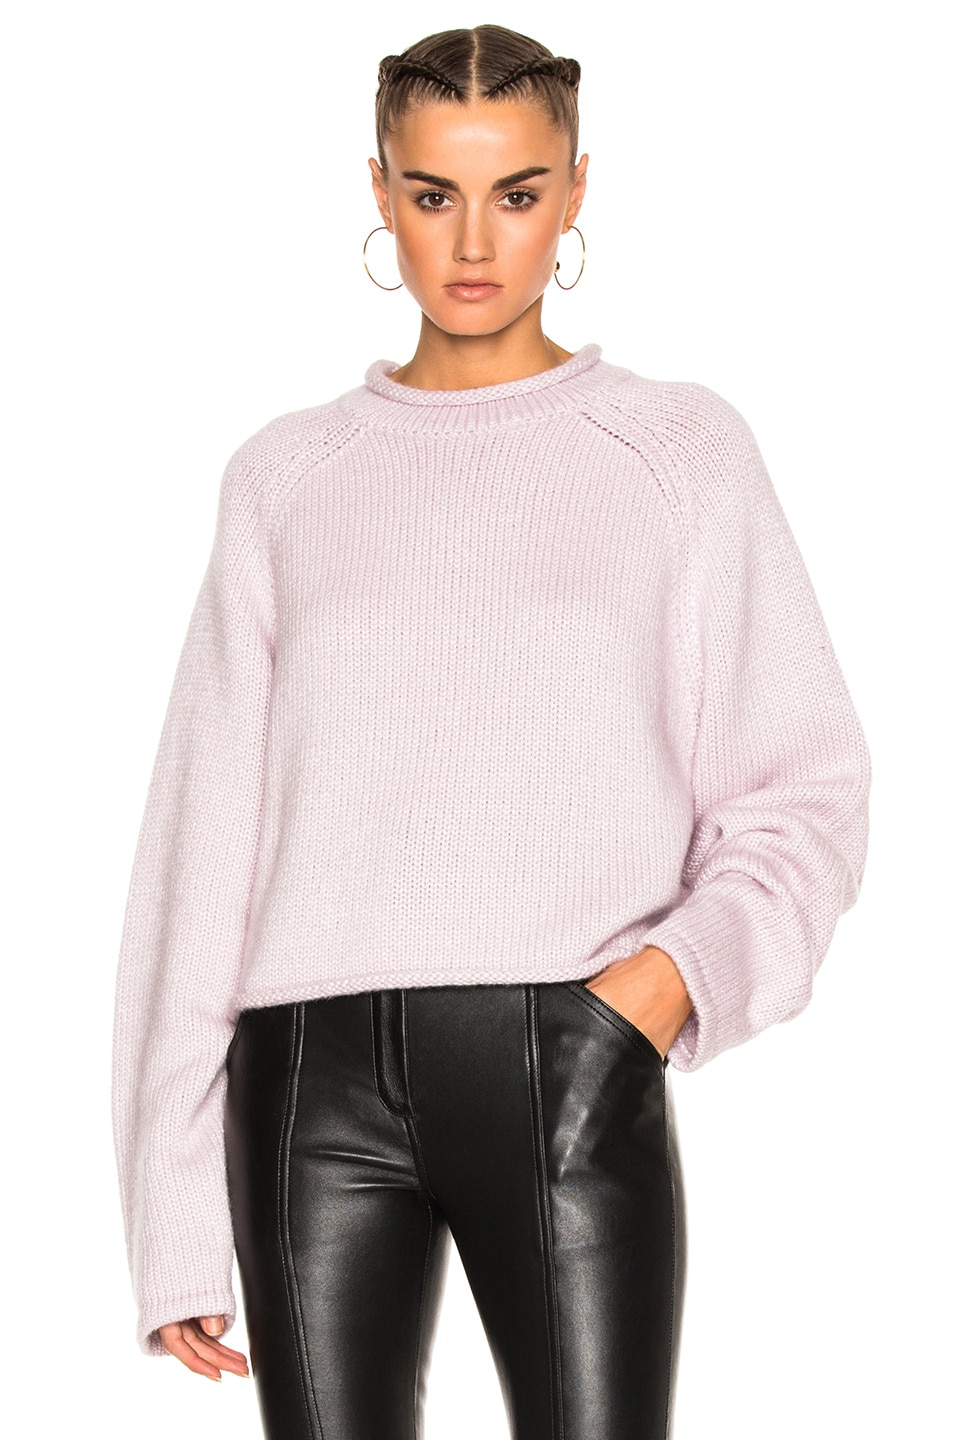 Image 1 of Protagonist Cropped Rollneck Sweater in Blossom